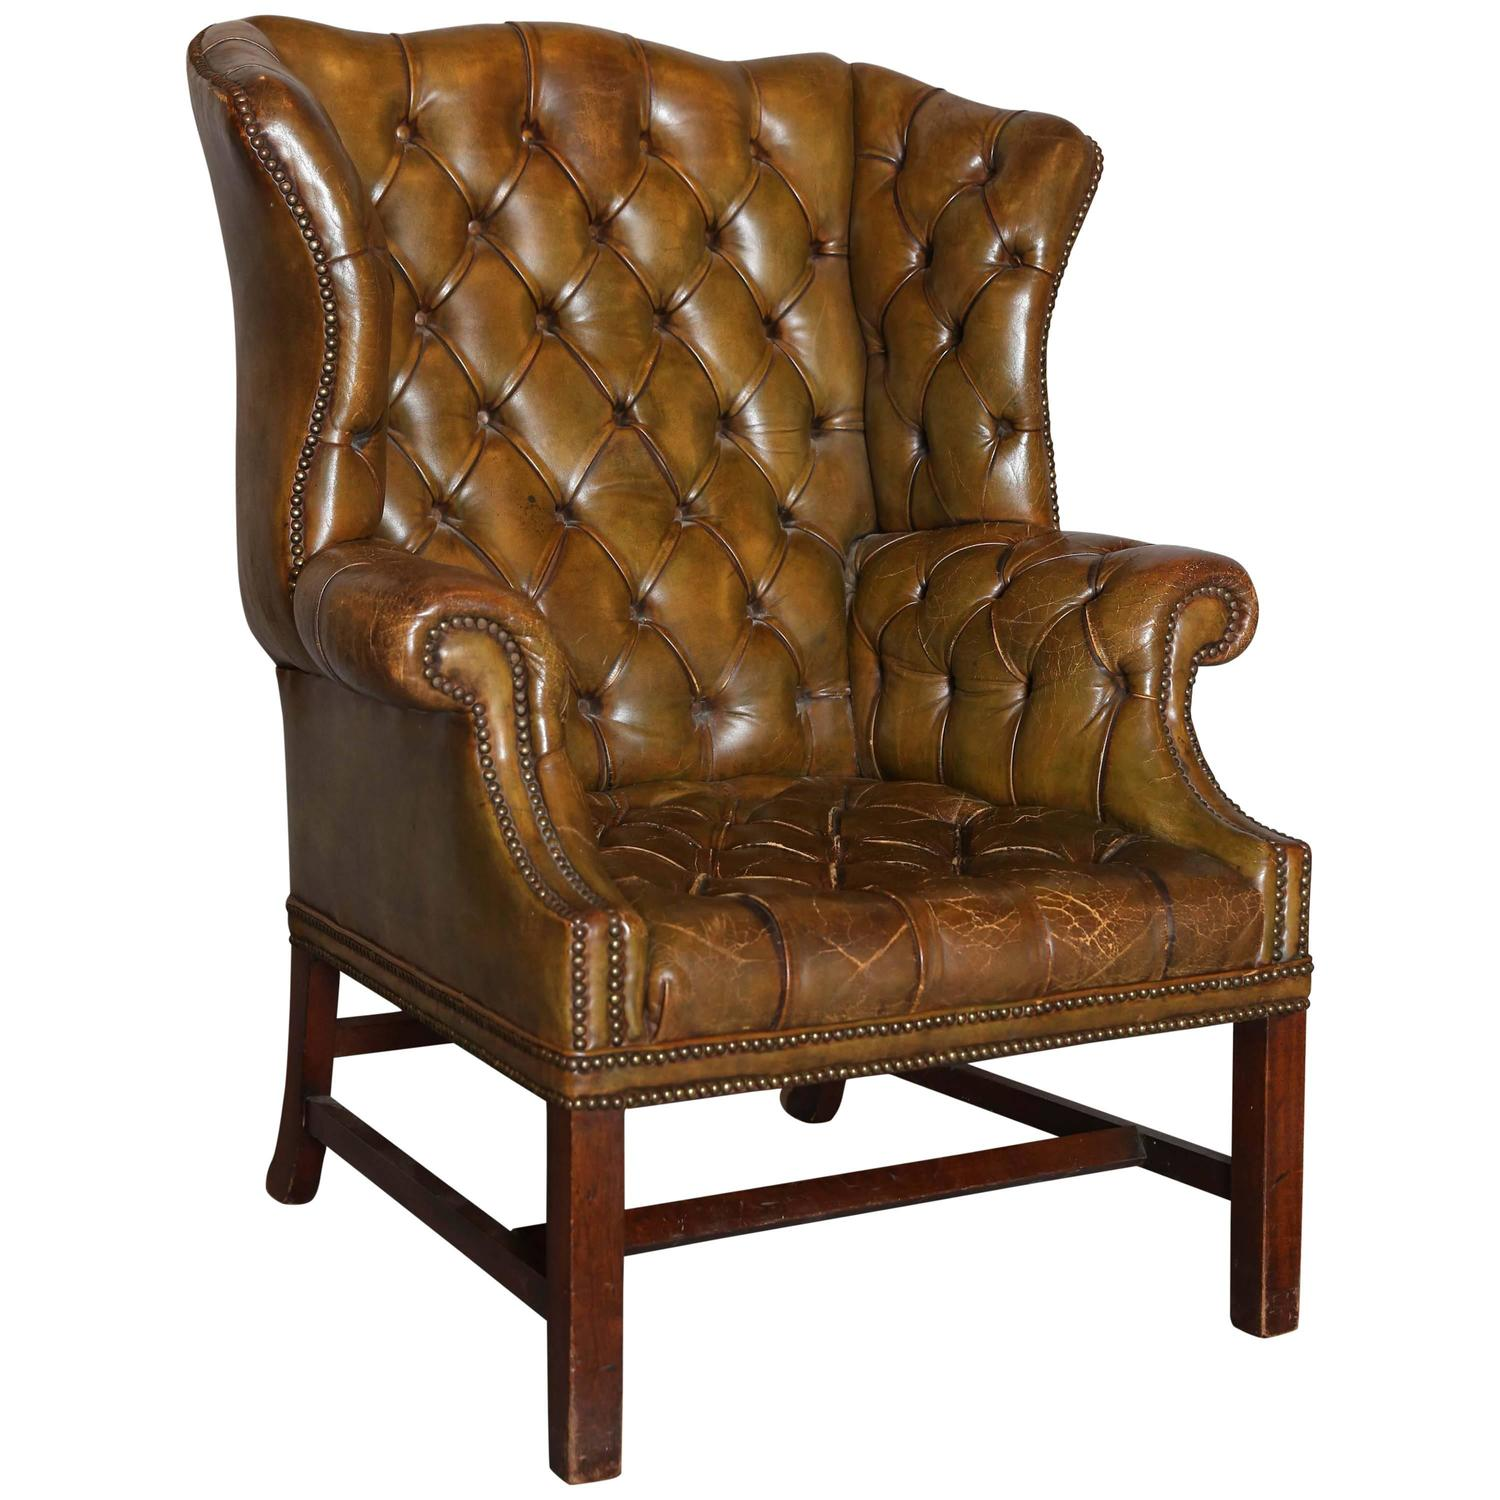 Vintage Wingback Chair Antique English Distressed Leather Wing Chair At 1stdibs